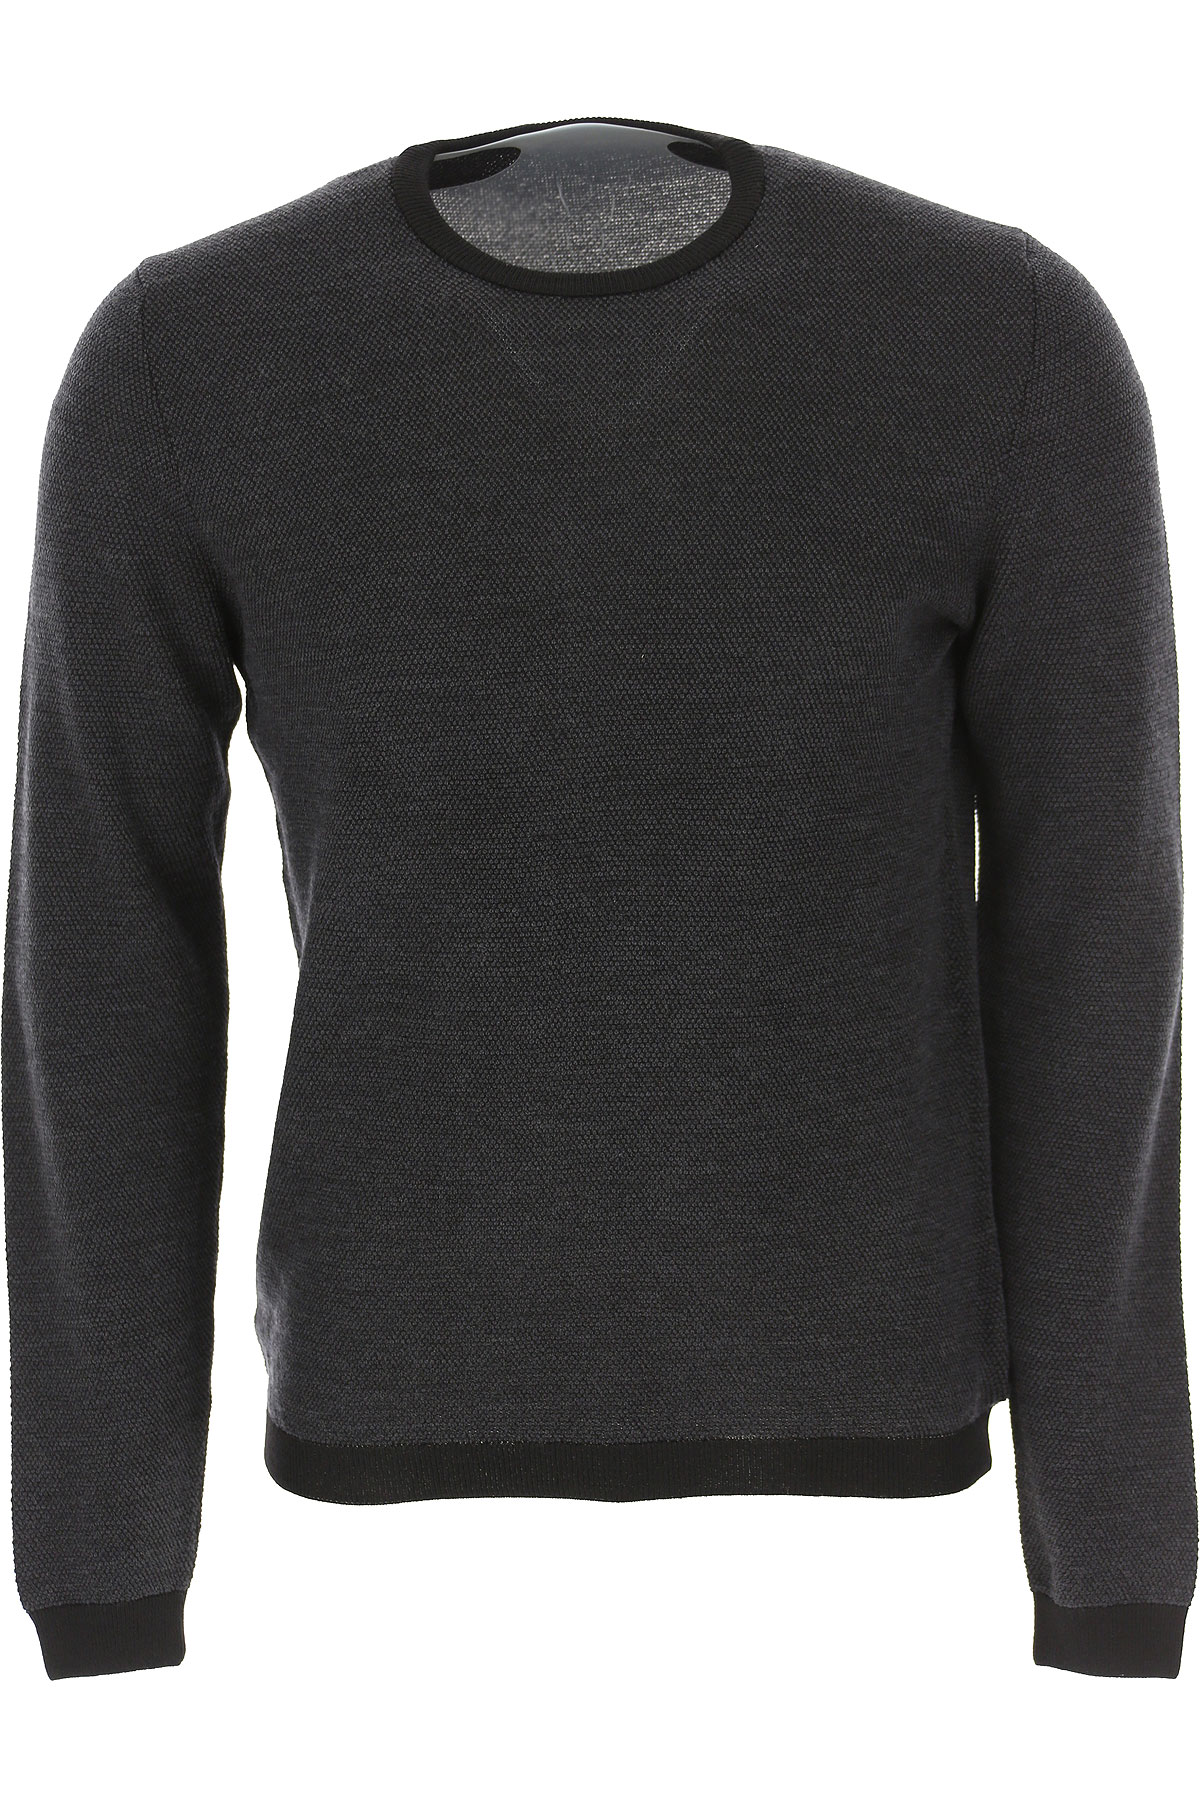 Zanone Sweater for Men Jumper On Sale, Anthracite Grey, Virgin wool, 2019, L M S